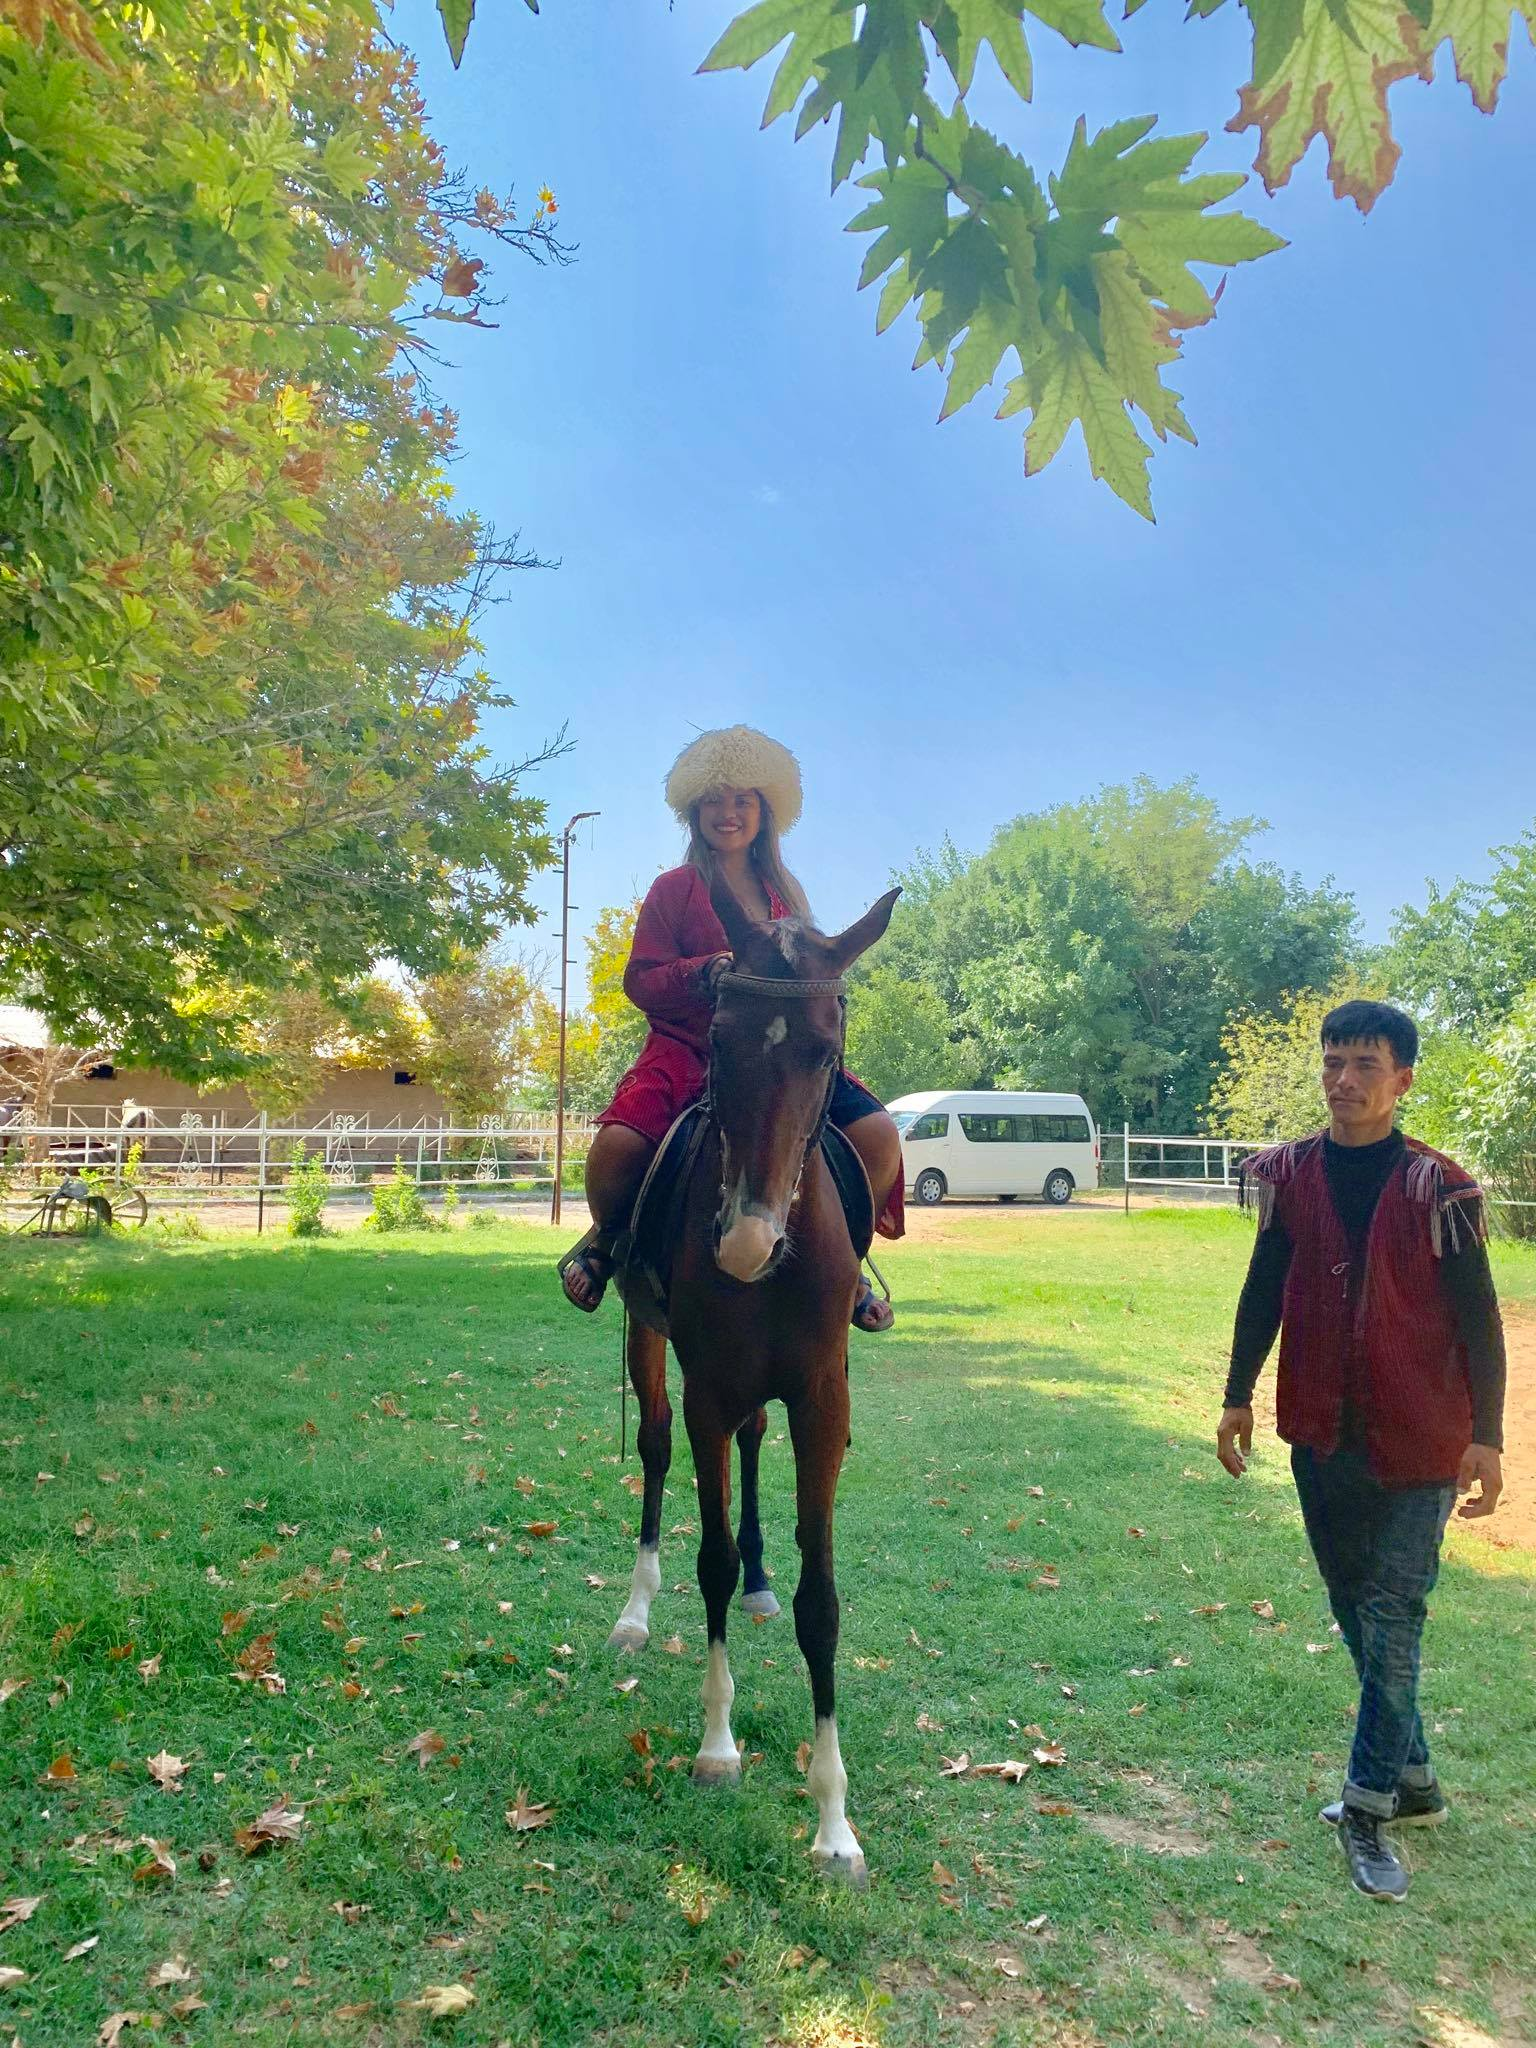 Kach Solo Travels in 2019 Visiting a Horse Farm and attending a wedding party1.jpg